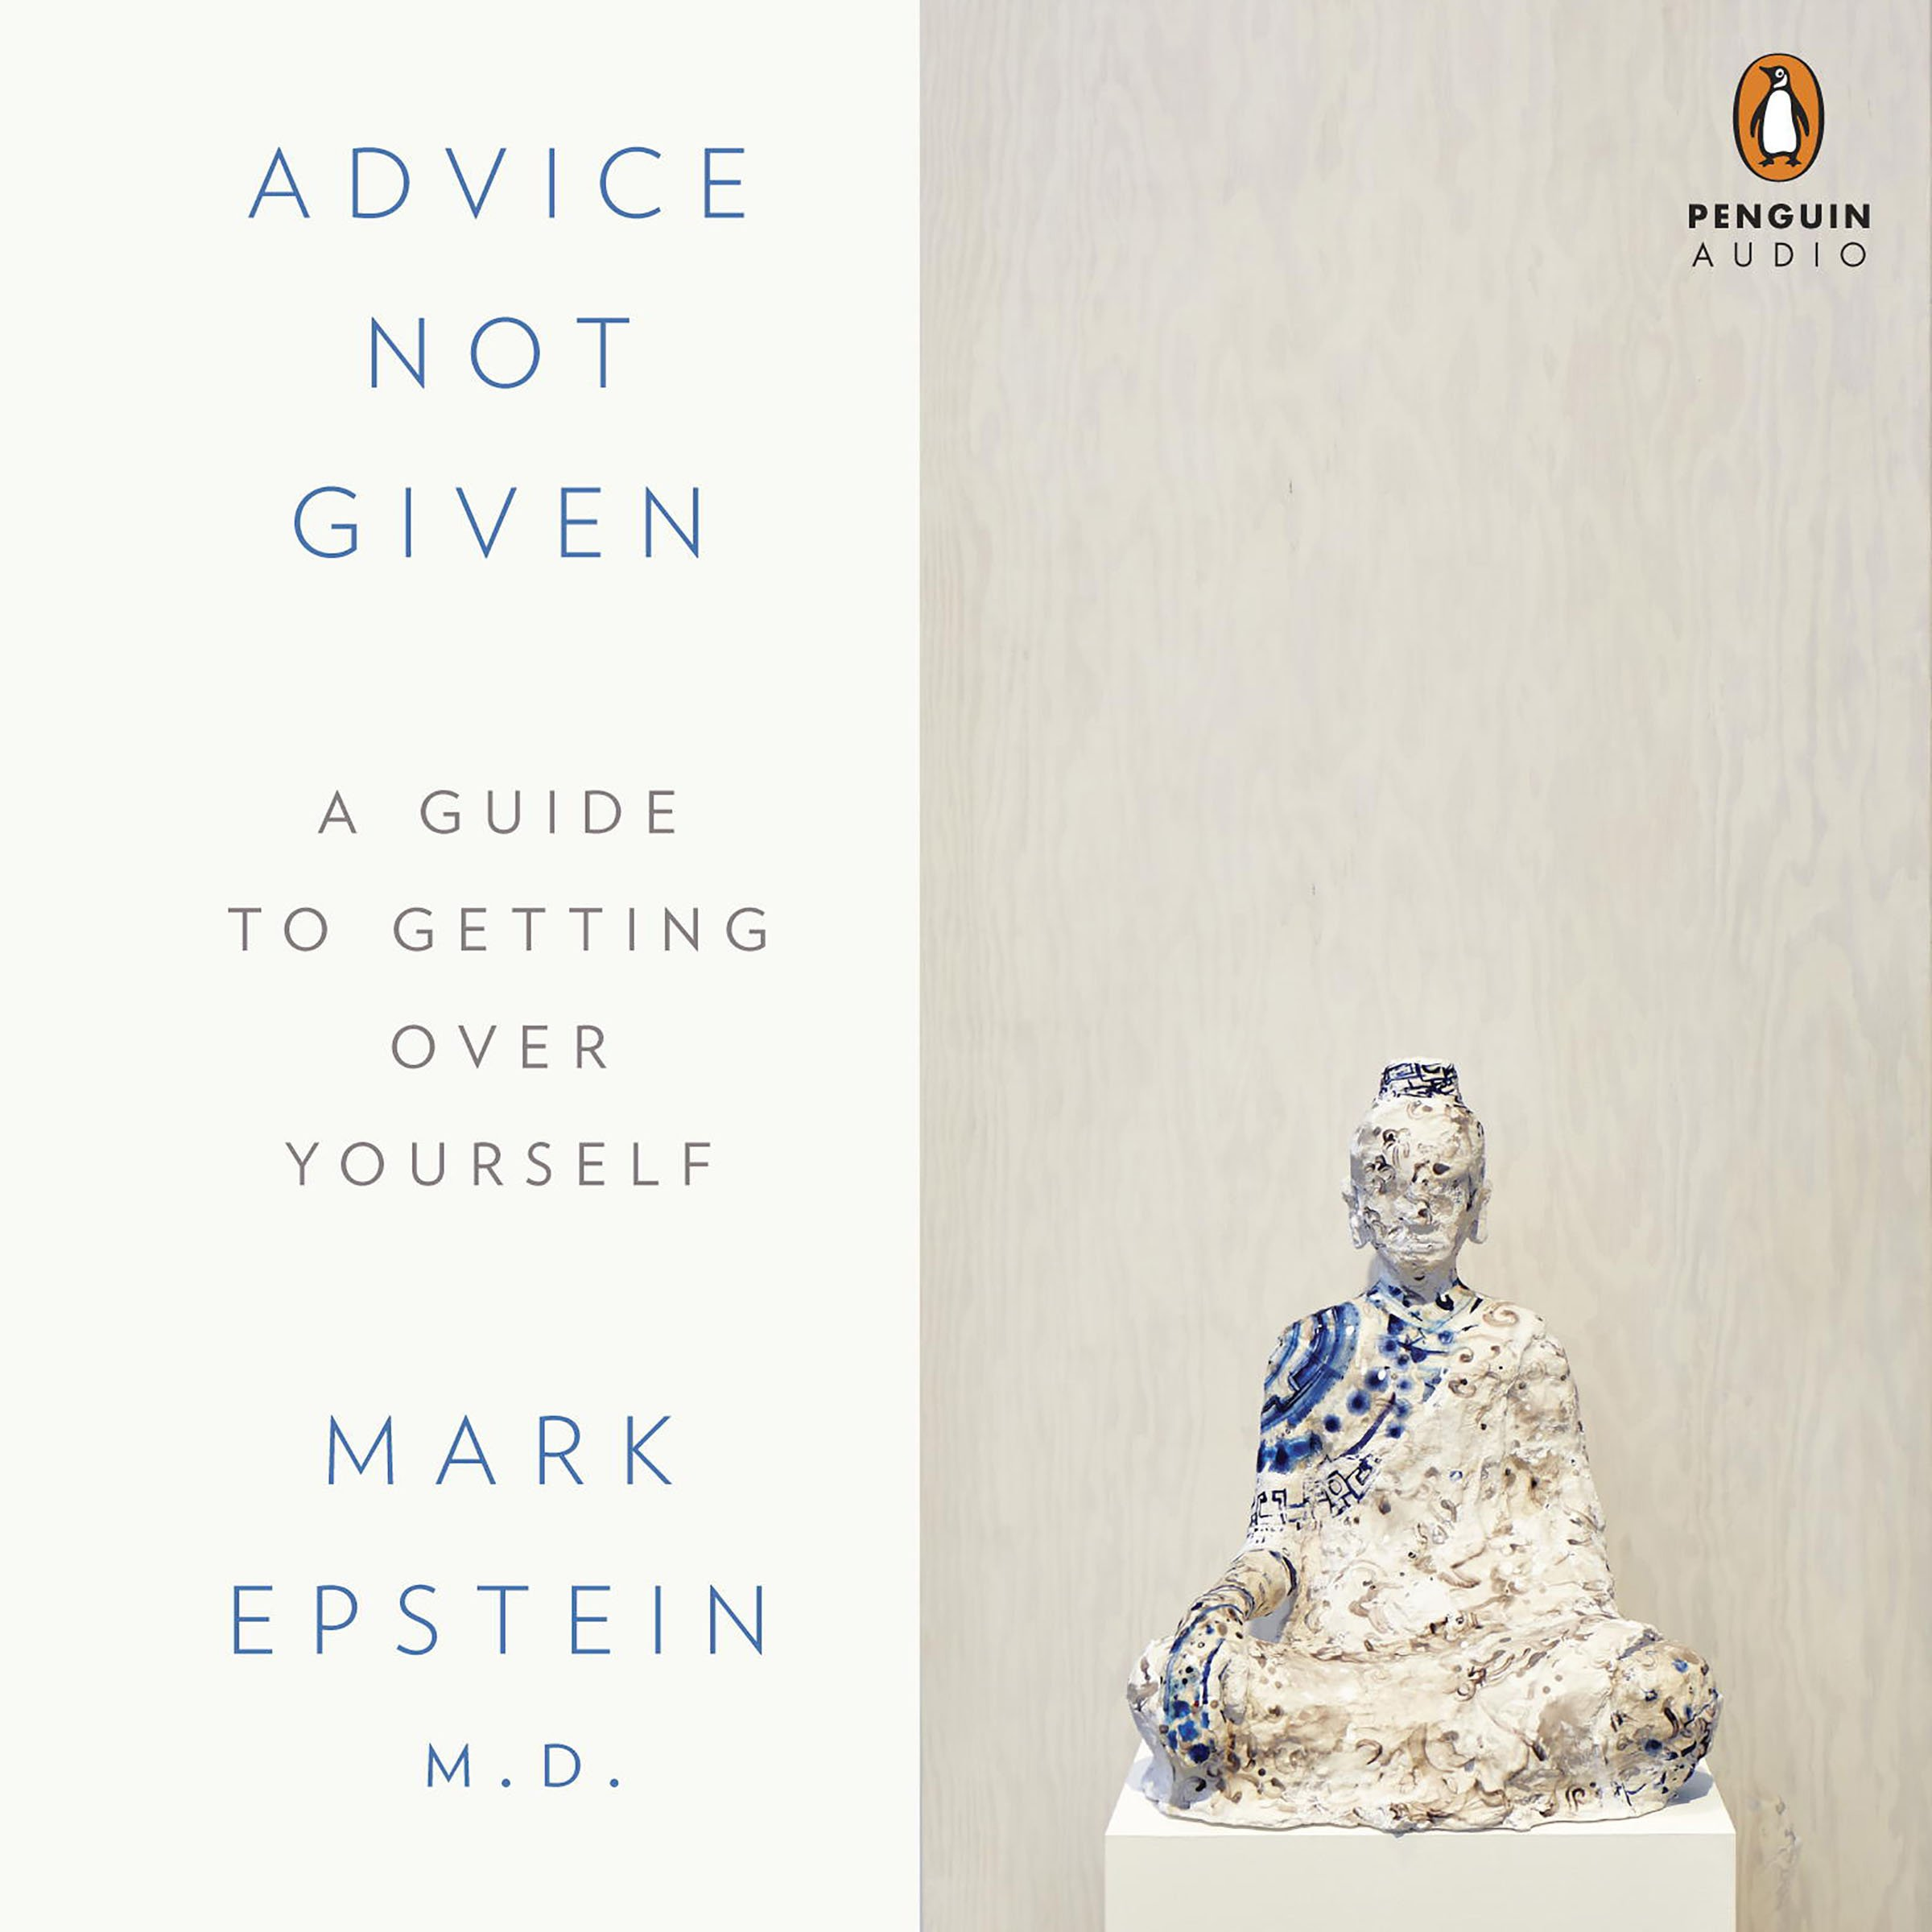 Image OfAdvice Not Given: A Guide To Getting Over Yourself